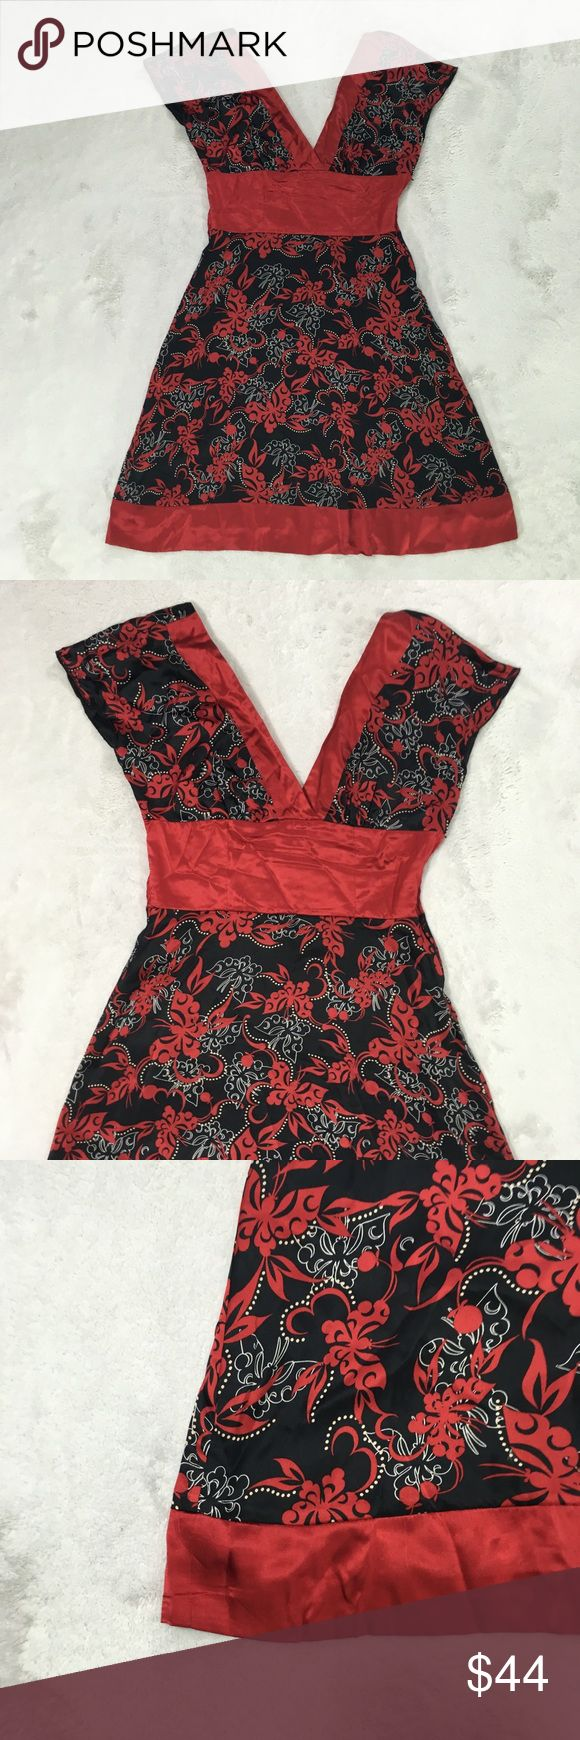 """Bebe black red and white 100% silk dress SMALL Beautiful dress by Bebe. Small. Silk. Very soft to the touch.   Asian looking pattern of butterflies I believe  Has a tie for across the back top- fully lined  Approx measurements when laying flat are  16"""" across bust  14"""" across waist  38"""" from top of shoulder down- length  Perfect holiday or party or going out dress bebe Dresses"""